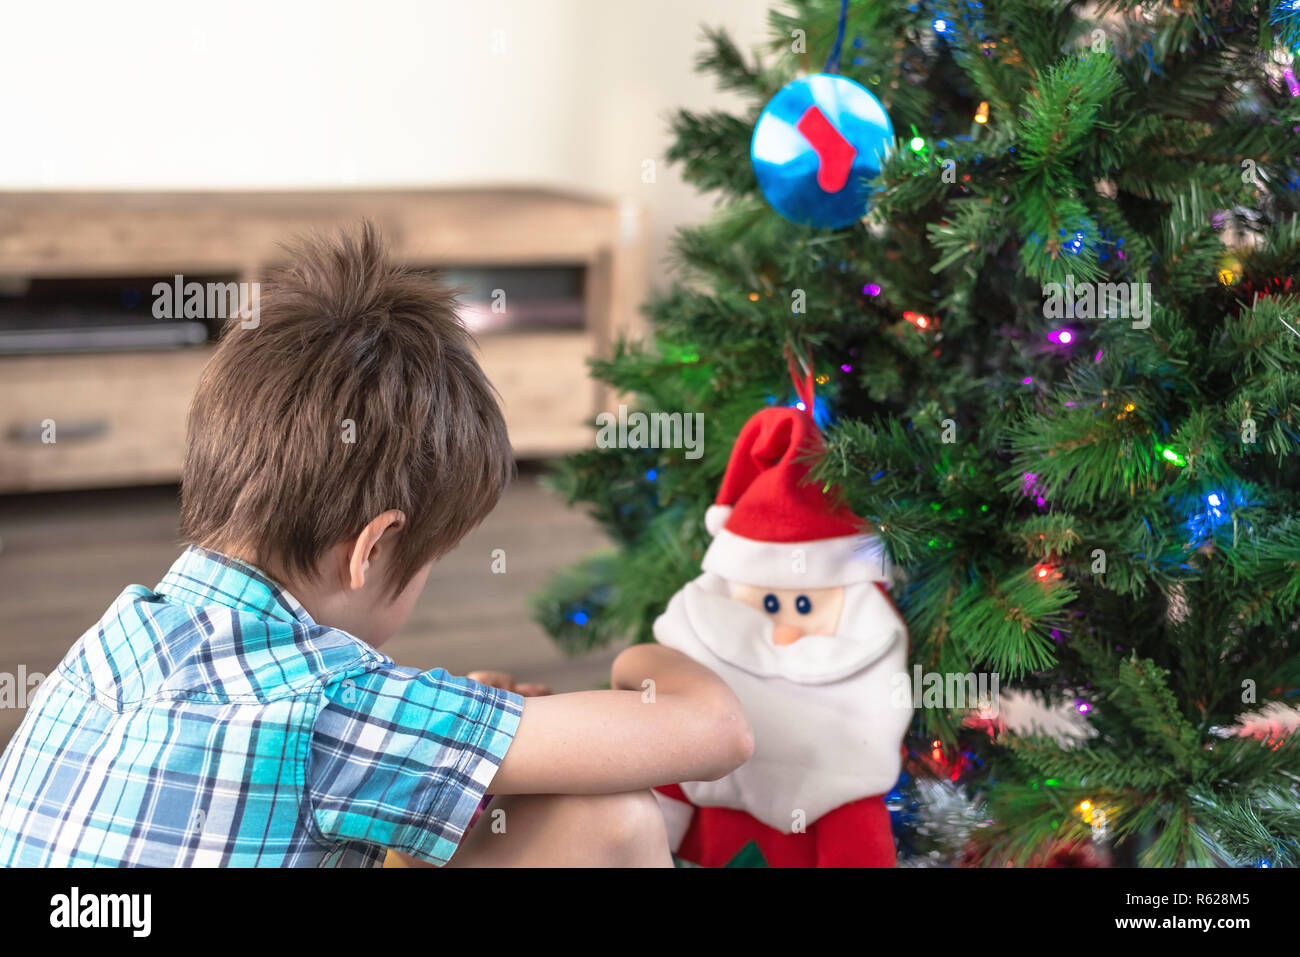 Santa Claus Near Christmas Tree Stockfotos & Santa Claus Near ...